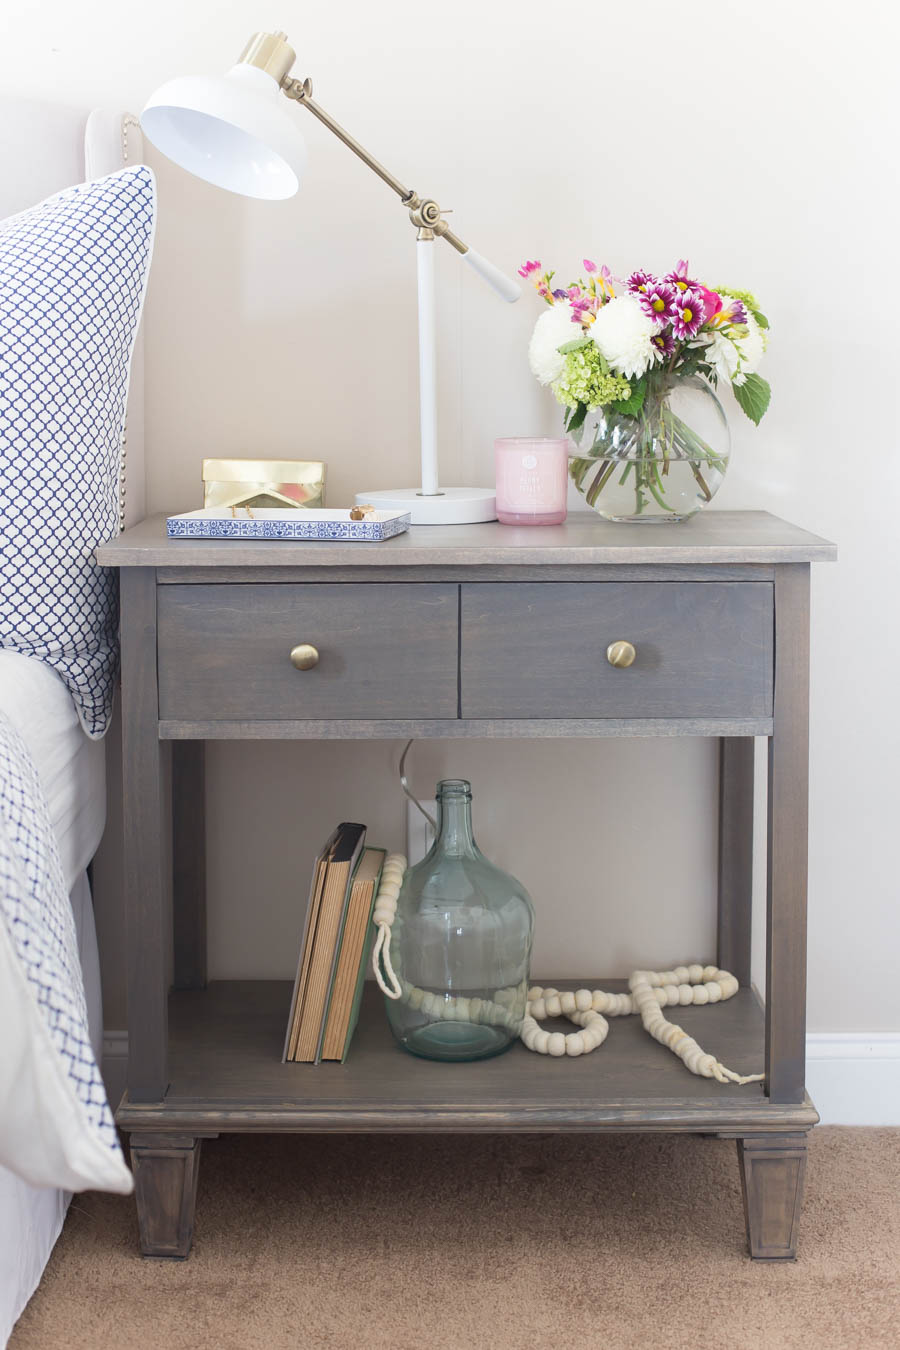 Diy Pottery Barn Inspired Sausalito Bedside Table